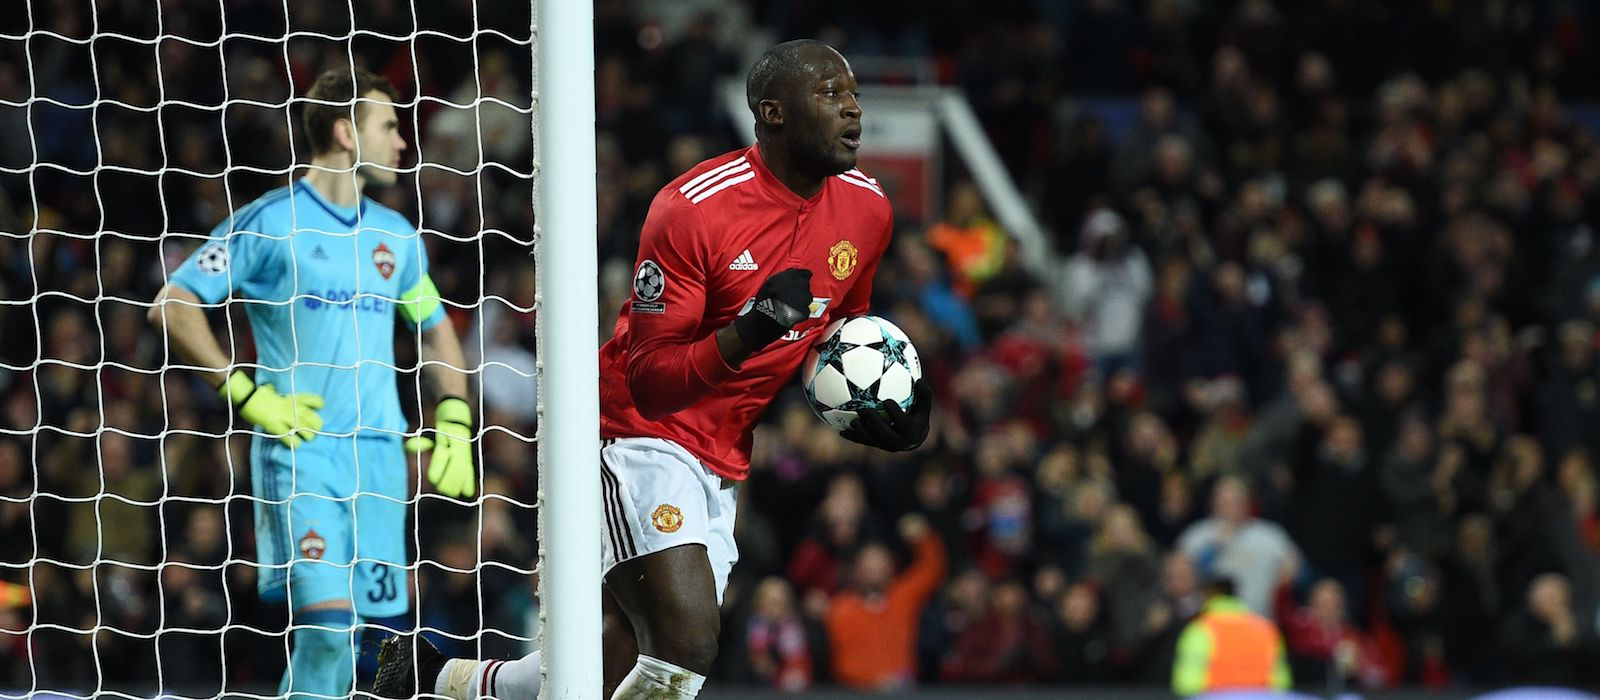 Manchester United 2-1 CSKA Moscow: Player ratings